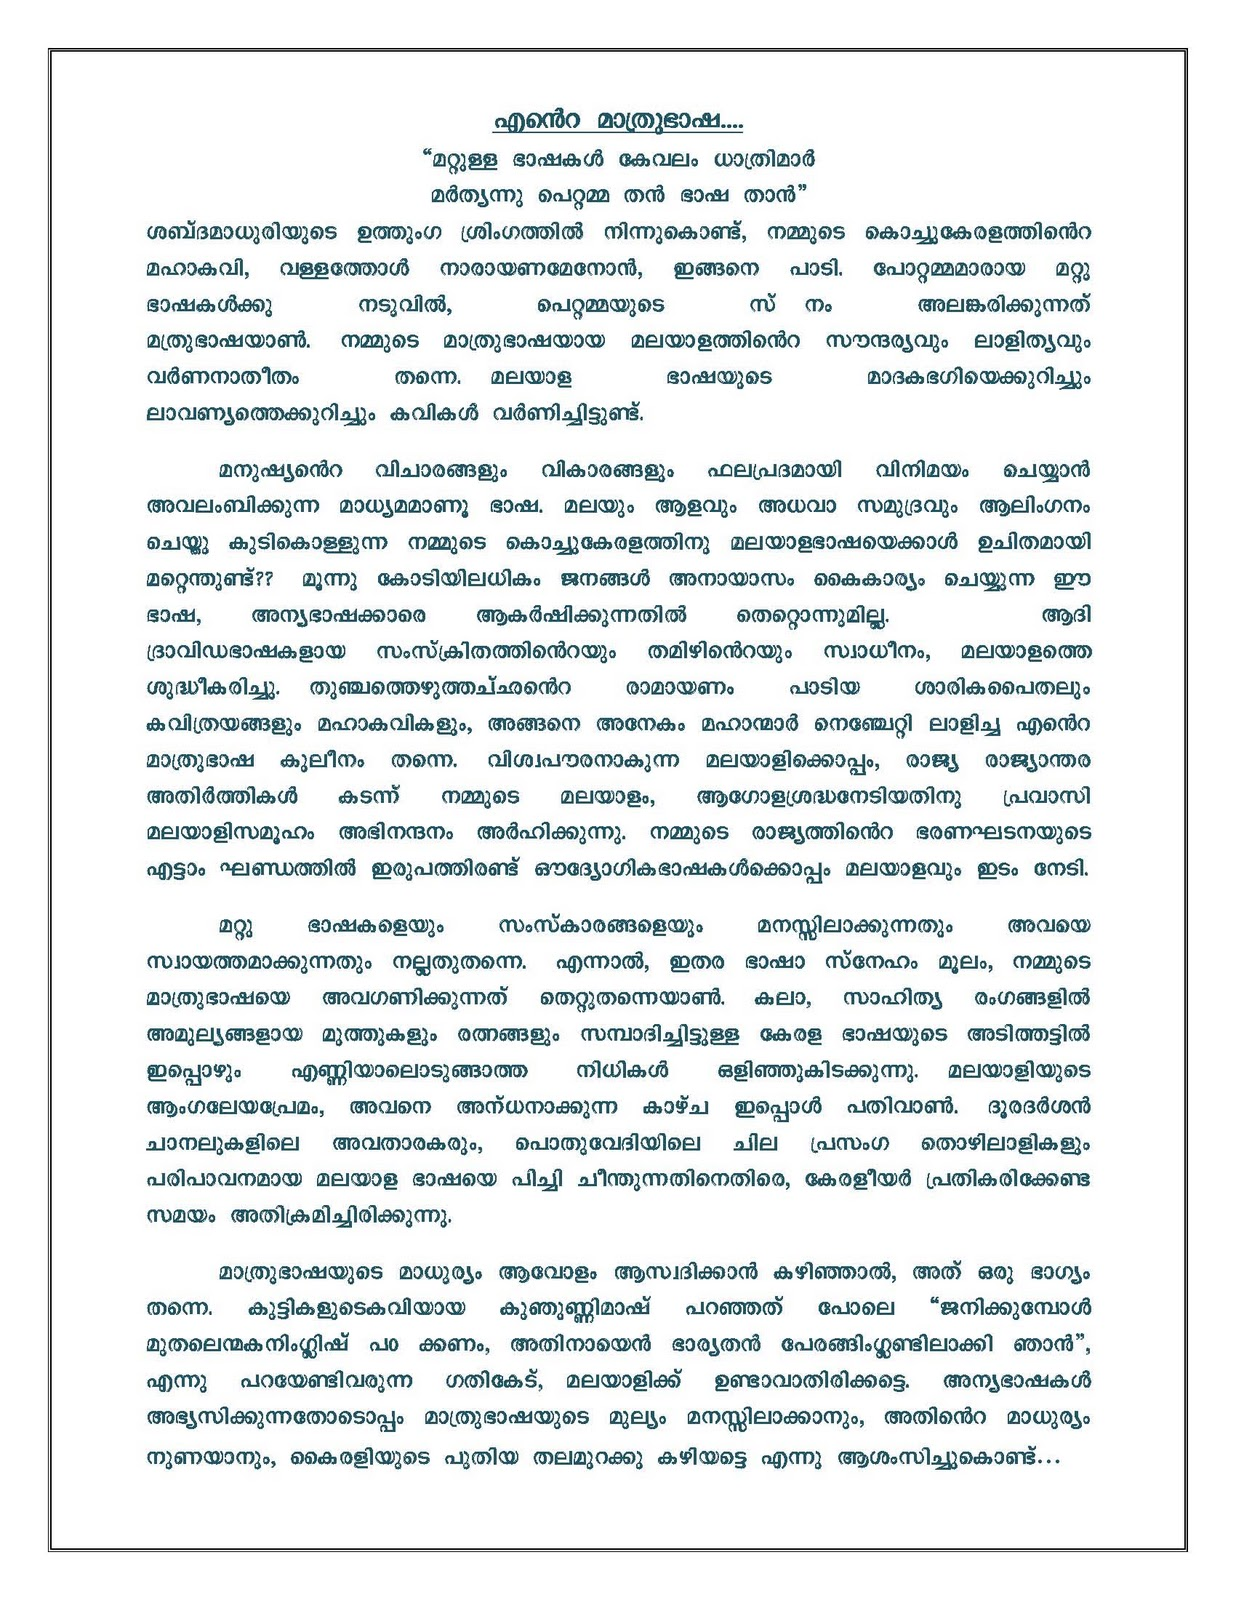 malayalam essay The malayalam wikipedia (malayalam: മലയാളം വിക്കിപീഡിയ) is the  malayalam edition of wikipedia, a free and publicly editable online encyclopedia, .